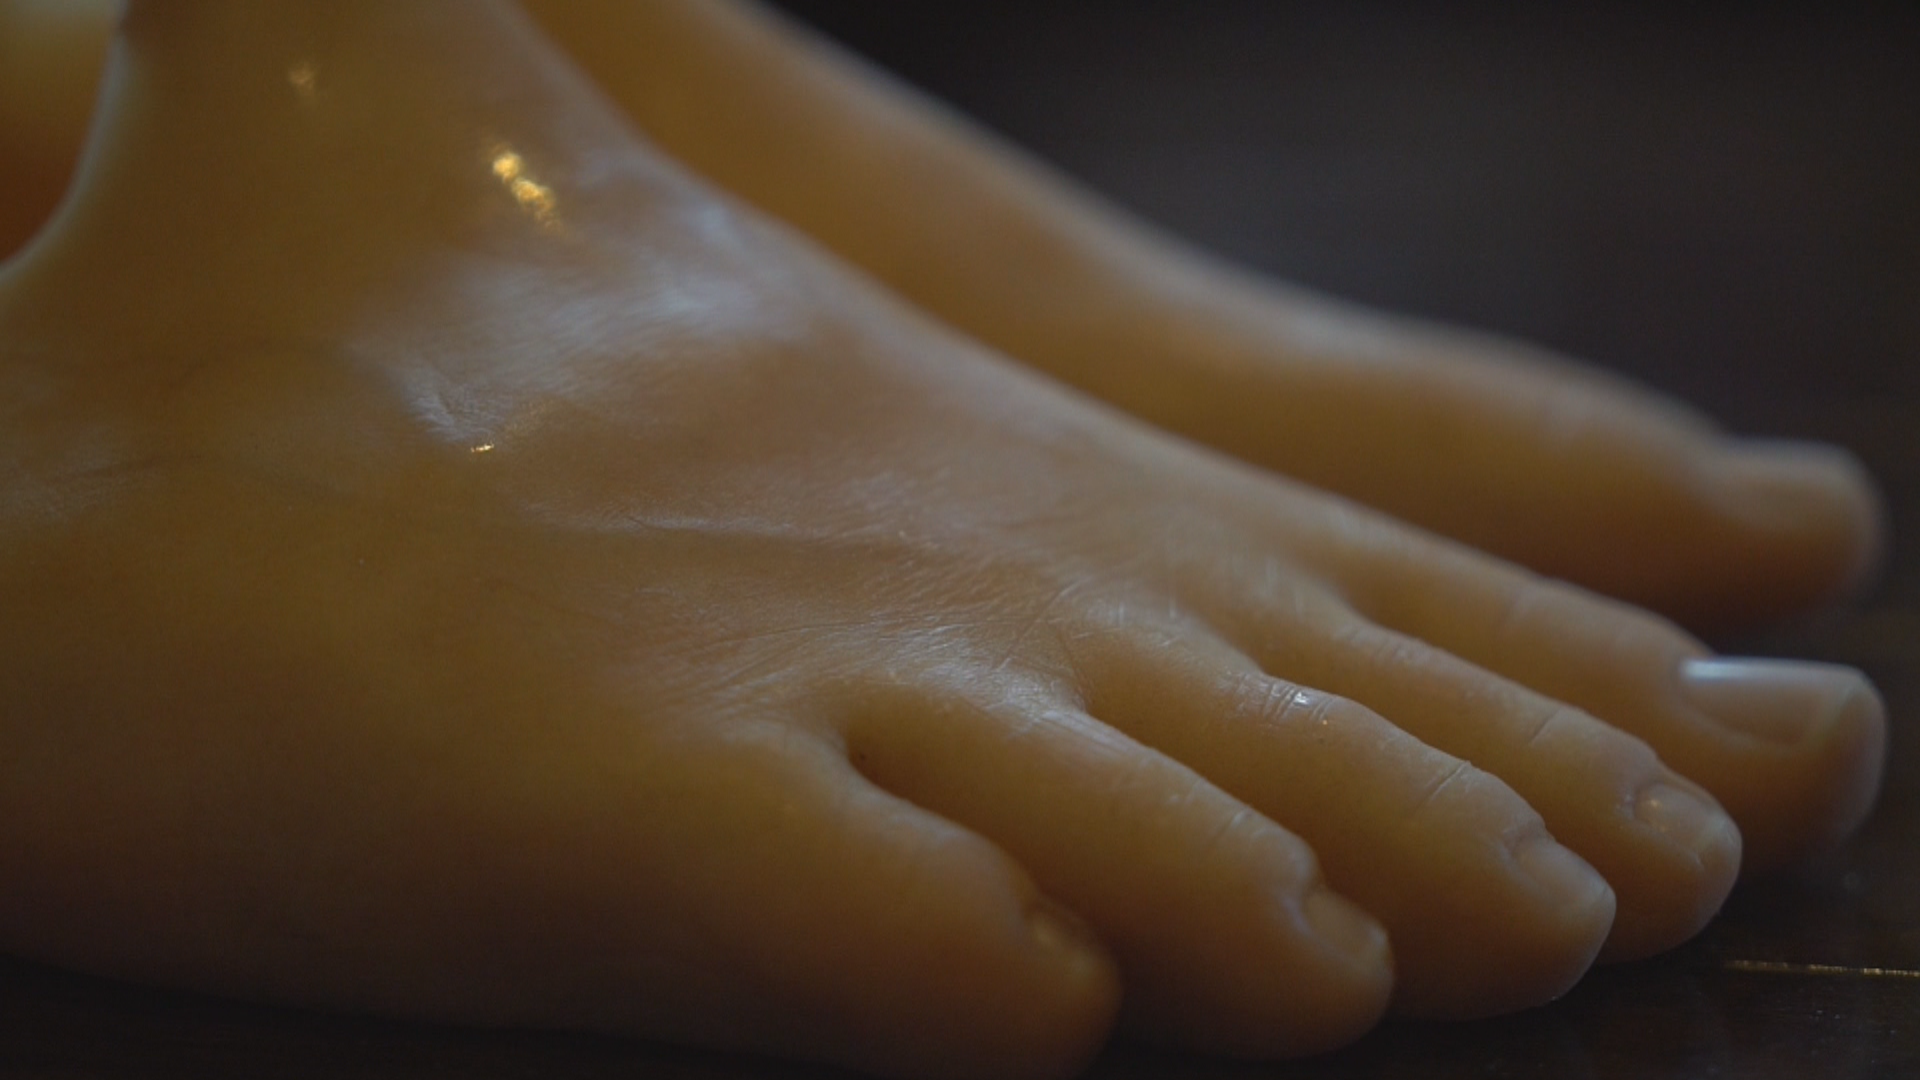 Elaine Dodge-Lynch said her prosthetic feet cost over $10,000 each. (Sherry Vivian/CBC)